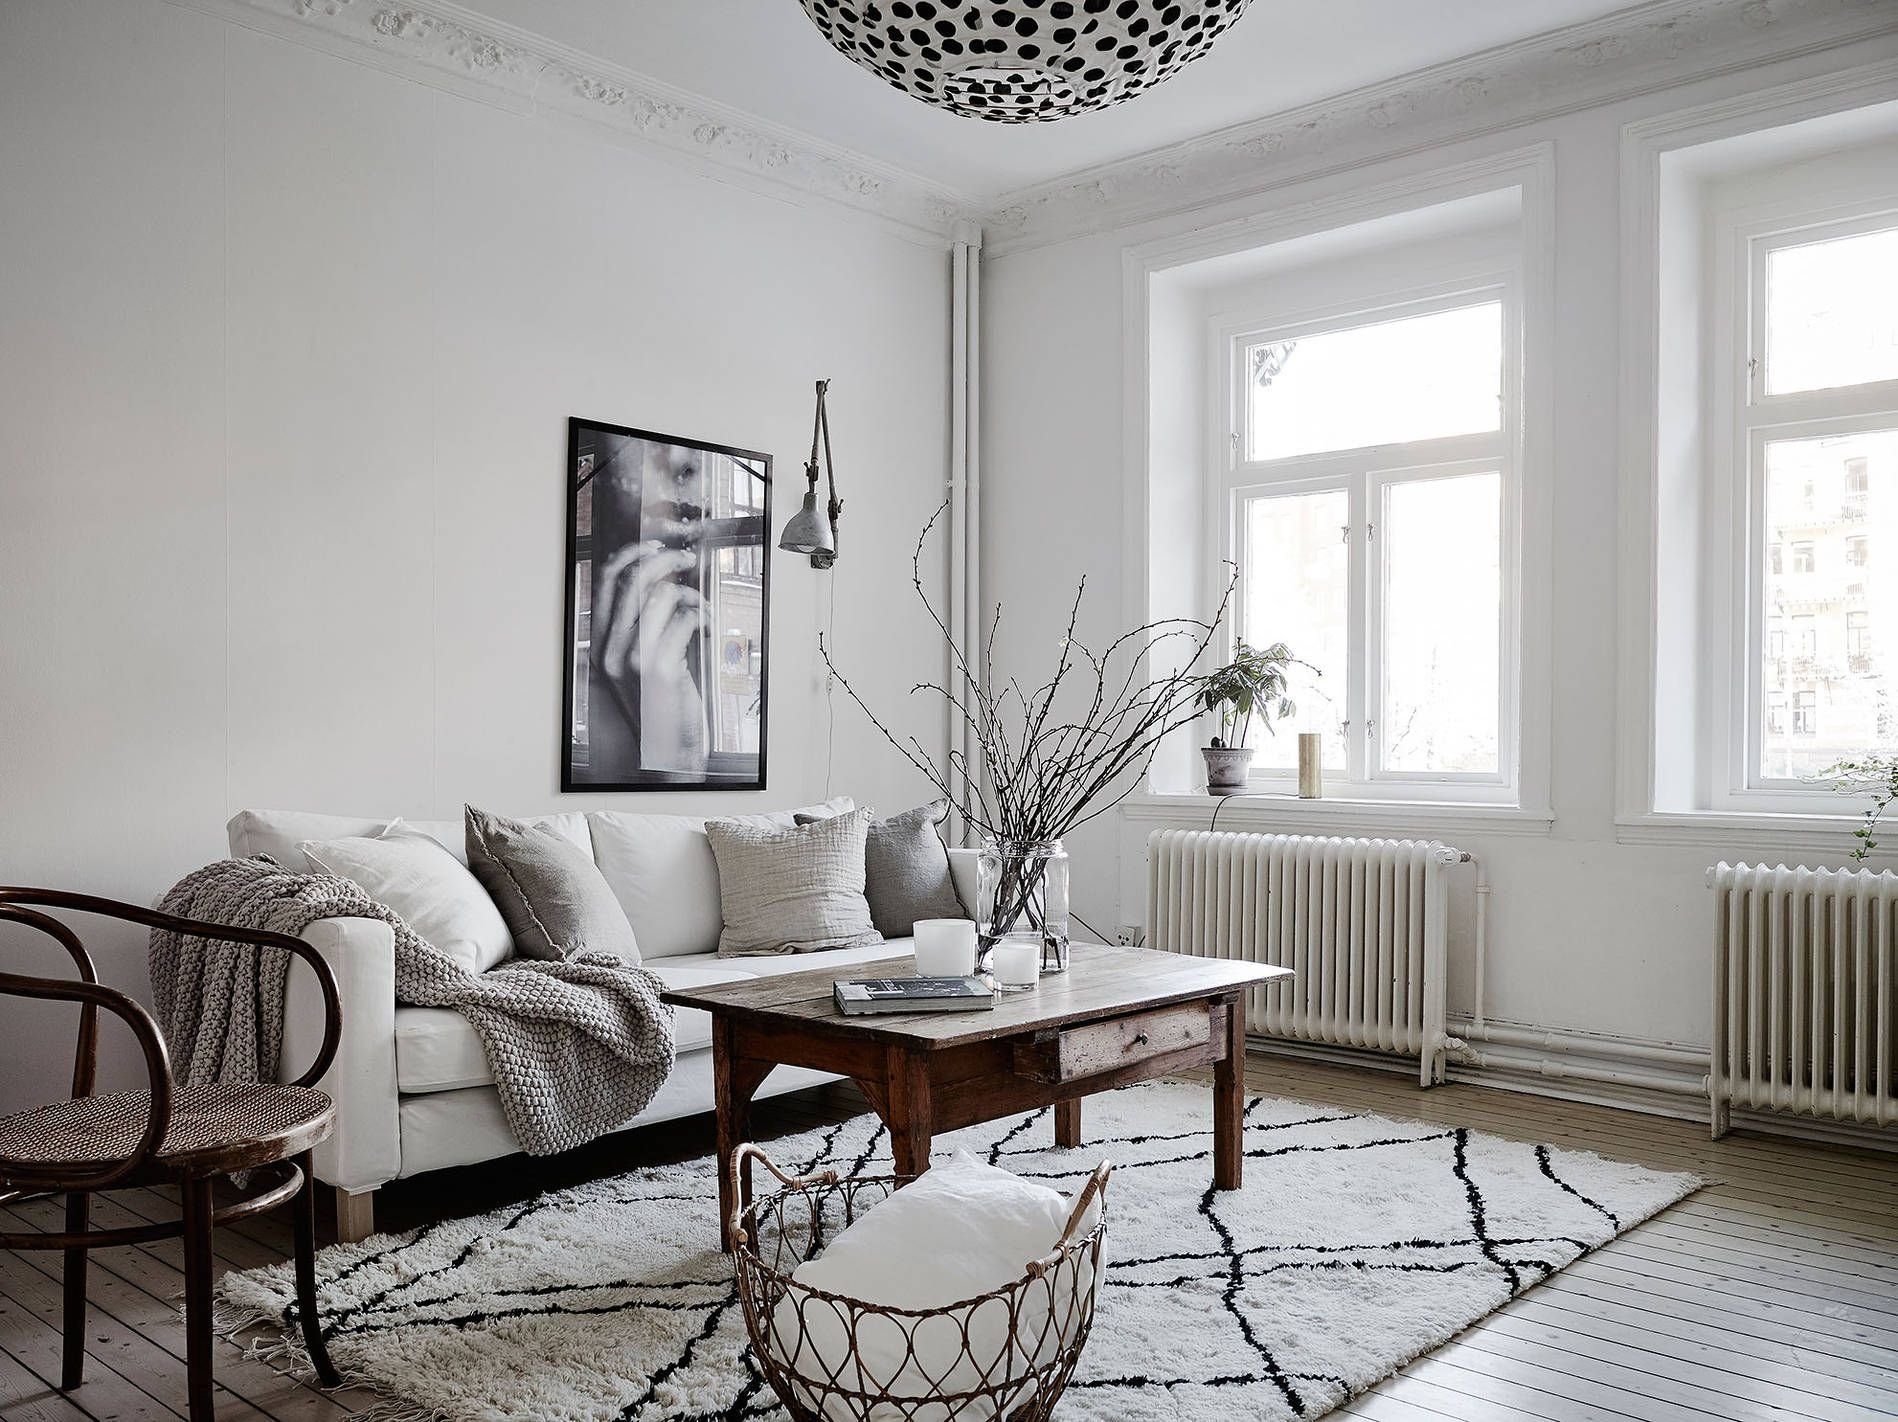 Old home with charm COCO LAPINE